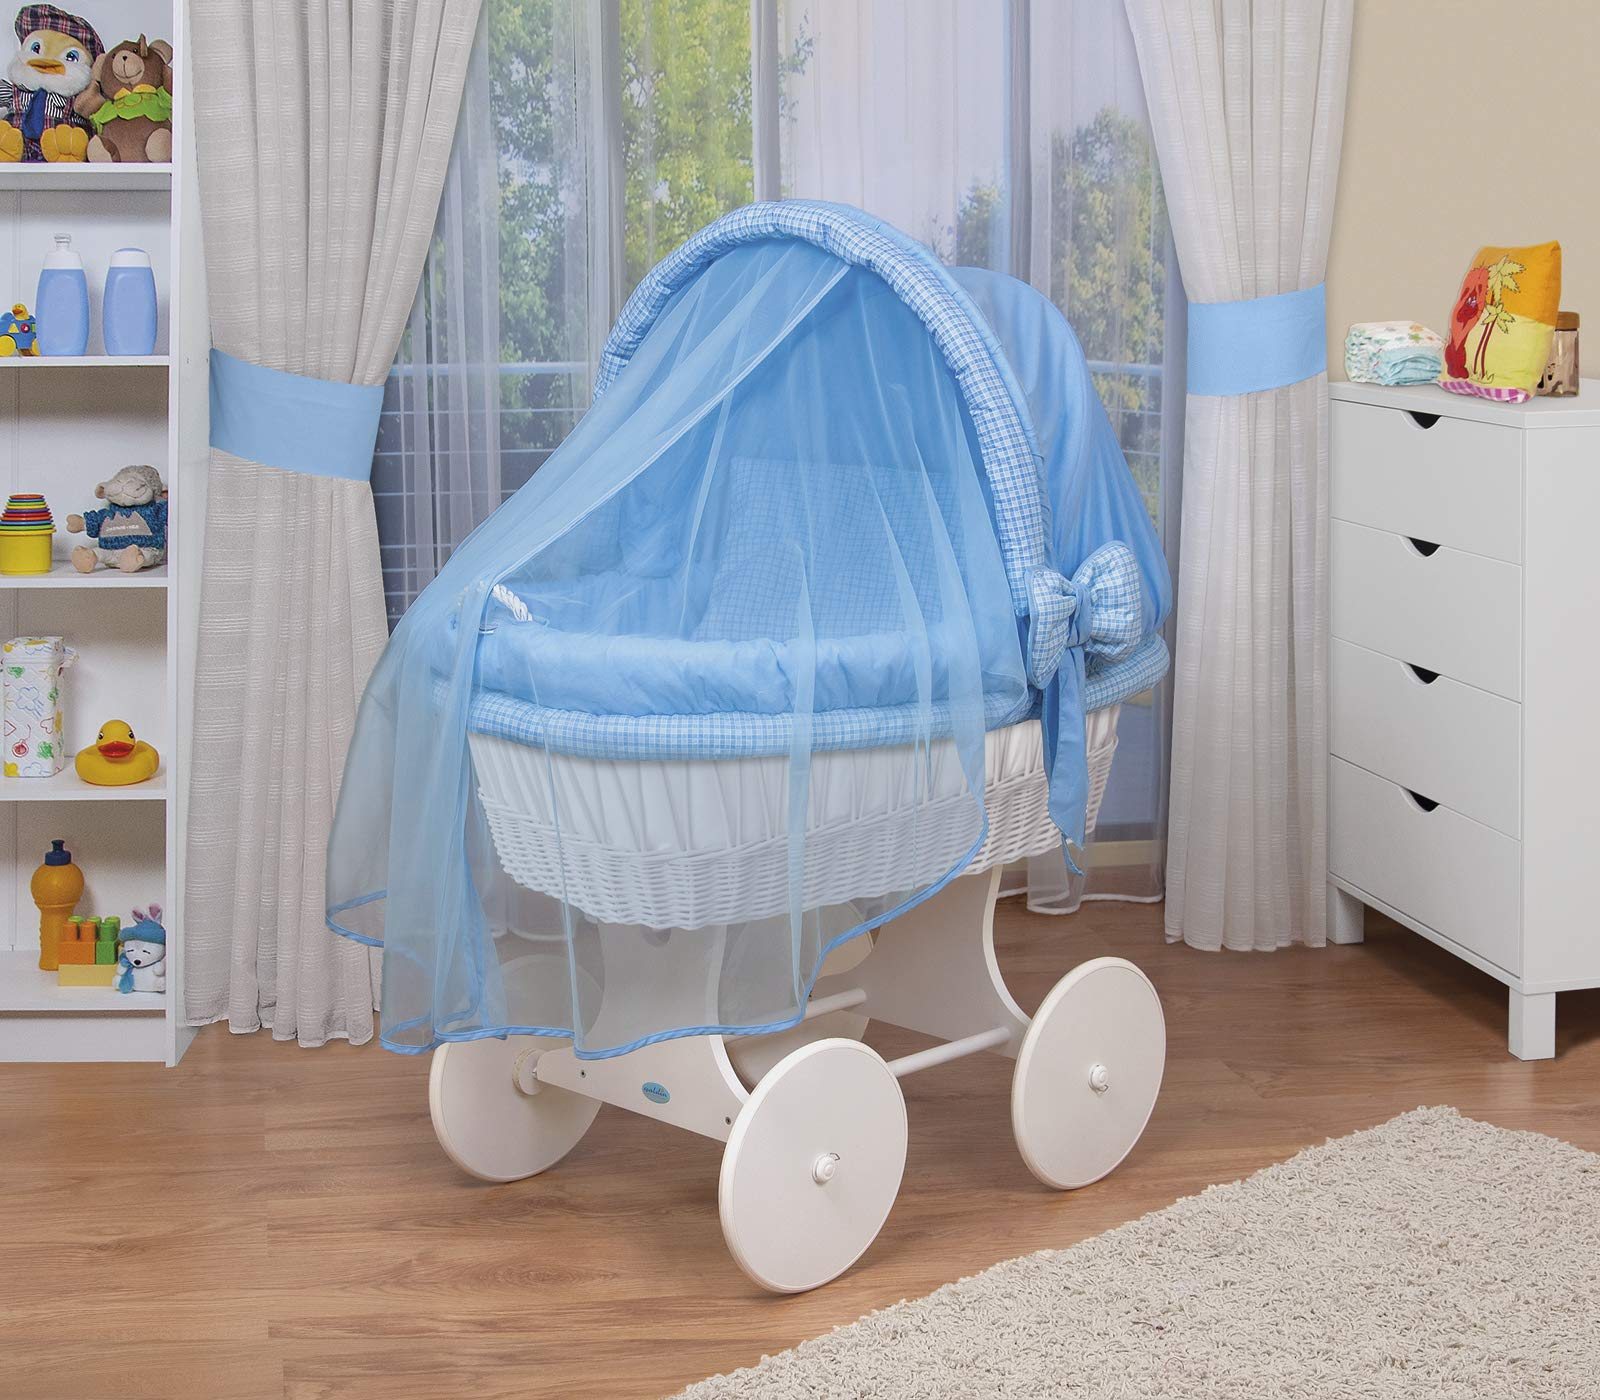 WALDIN Baby wicker cradle,Moses basket,44 models available,white painted stand/wheels,textile colour blue/squared  For more models and colours on Amazon click on WALDIN under the title Bassinet complete with bedding and stand Certified to safety standard EN 1130-1/2 2